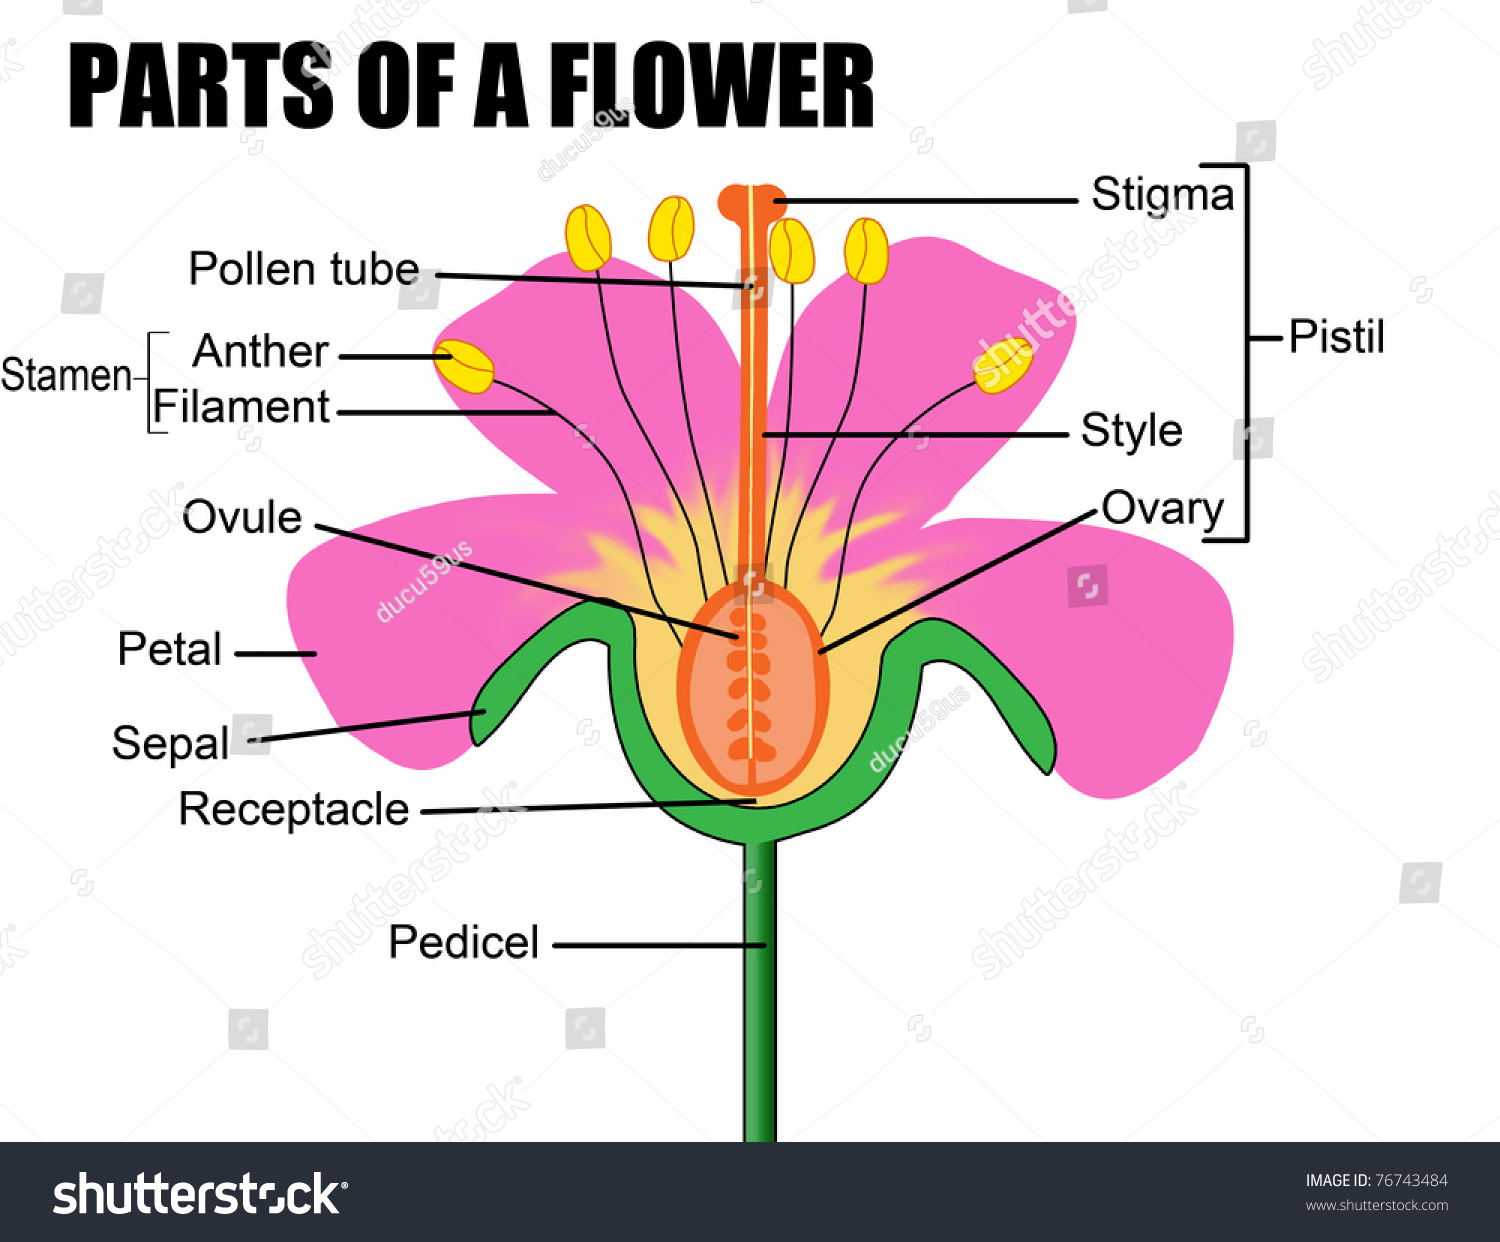 Parts Of A Flower Vector Illustration Stock Photo